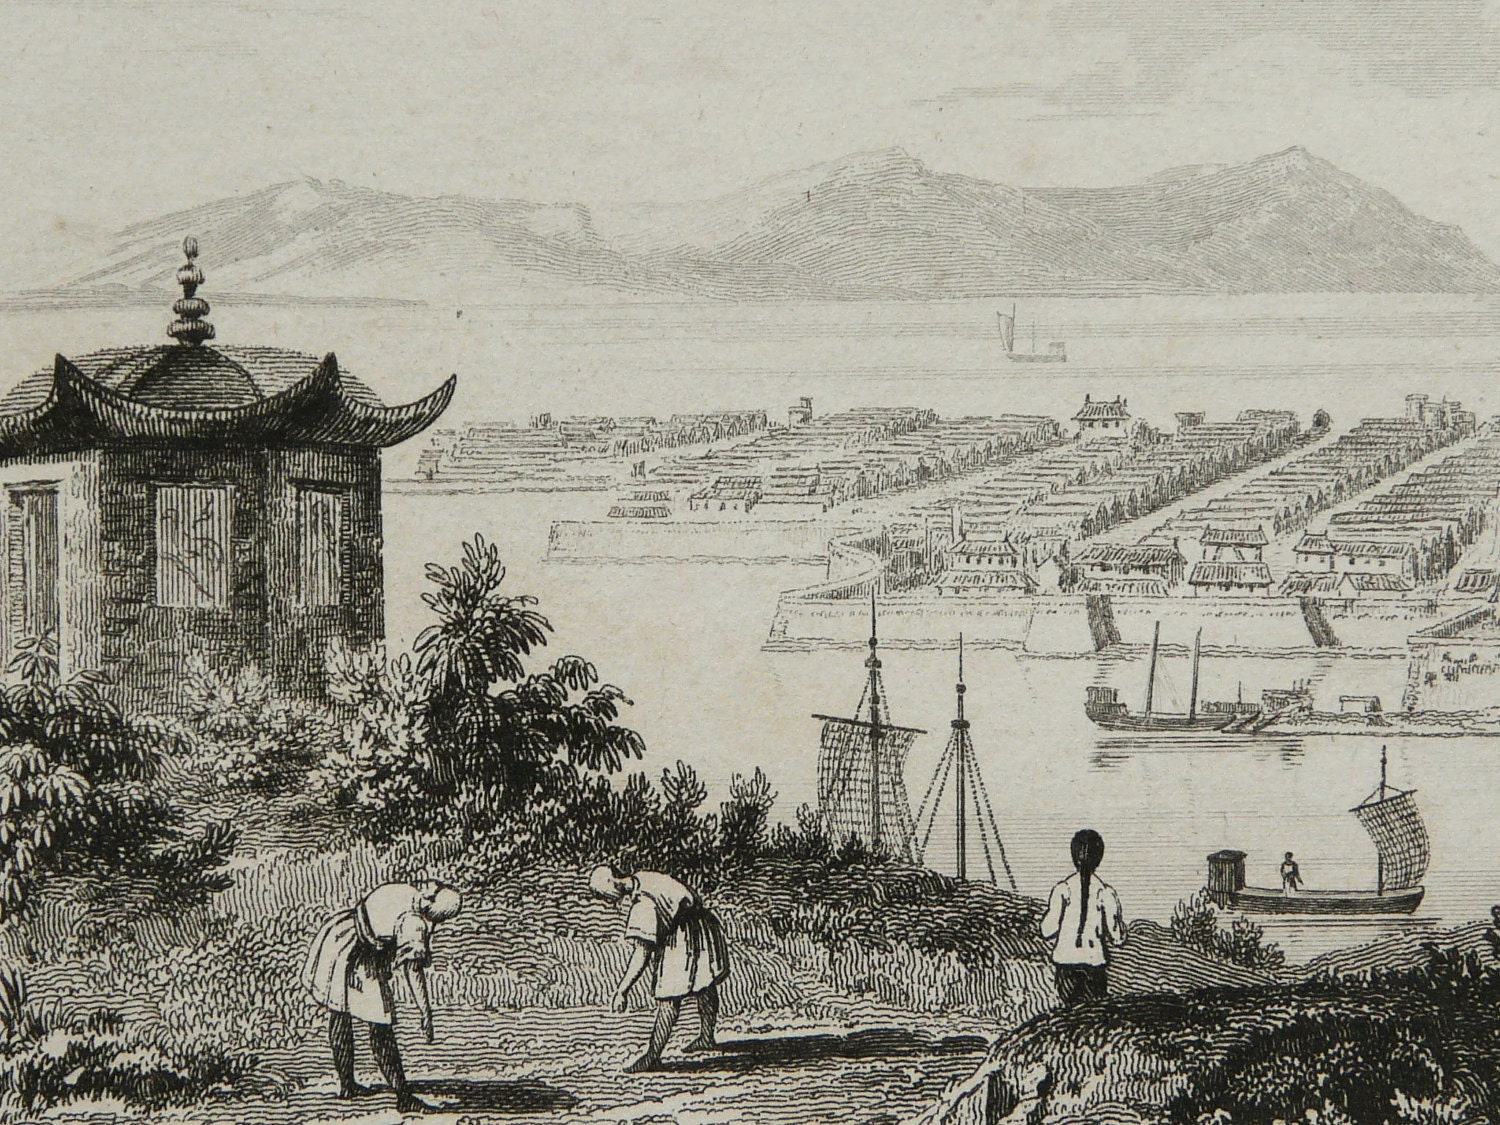 1837 Antique engraving: VIEW of HANGZHOU, CHINA, Yangtze River, Zhejiang. 176 years old copper engraving